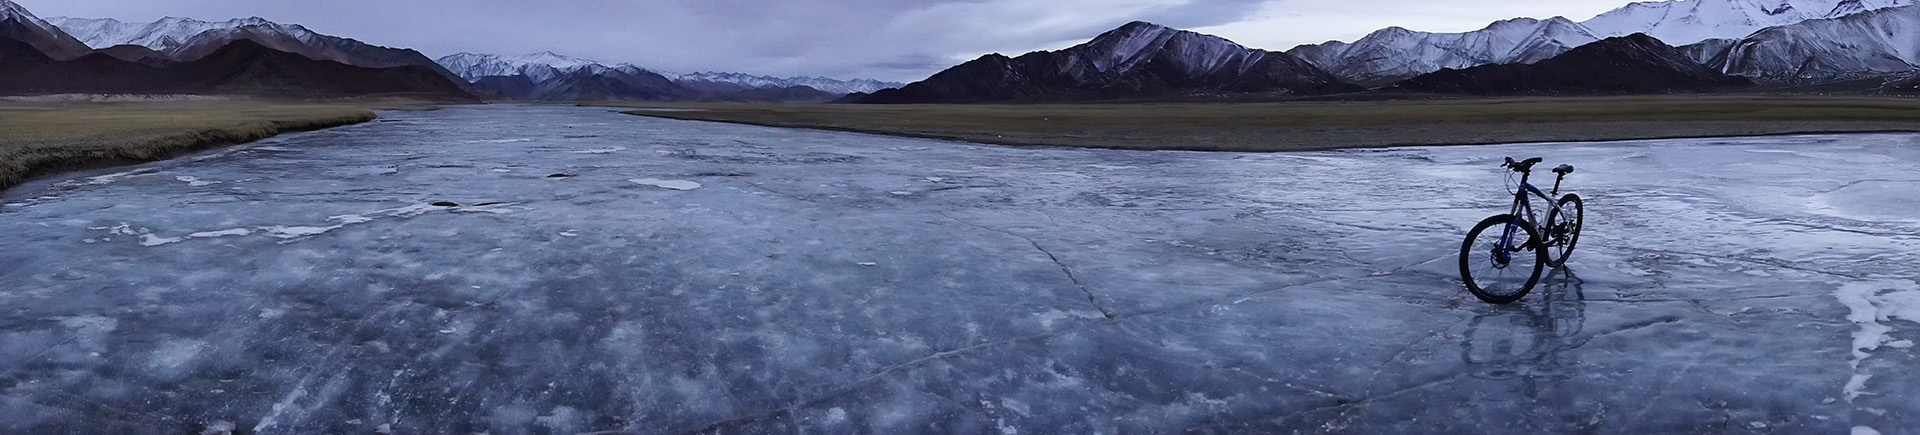 Ice Cycling in Ladakh photo by Nitin Gera